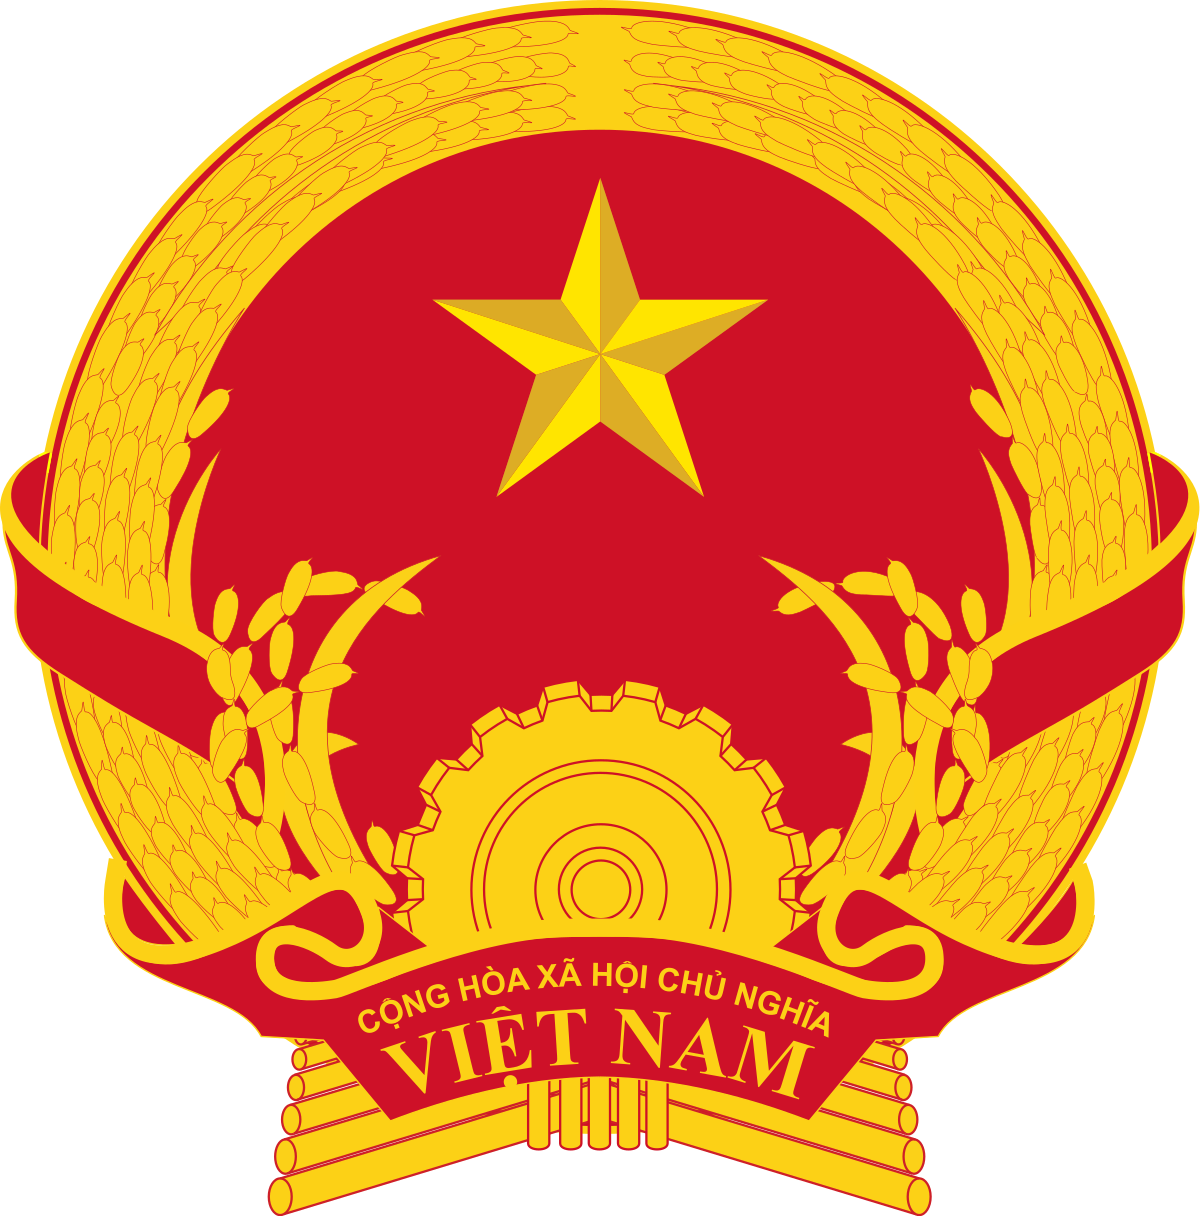 3rd anniversary vietnamese clipart graphic free library Politics of Vietnam - Wikipedia graphic free library